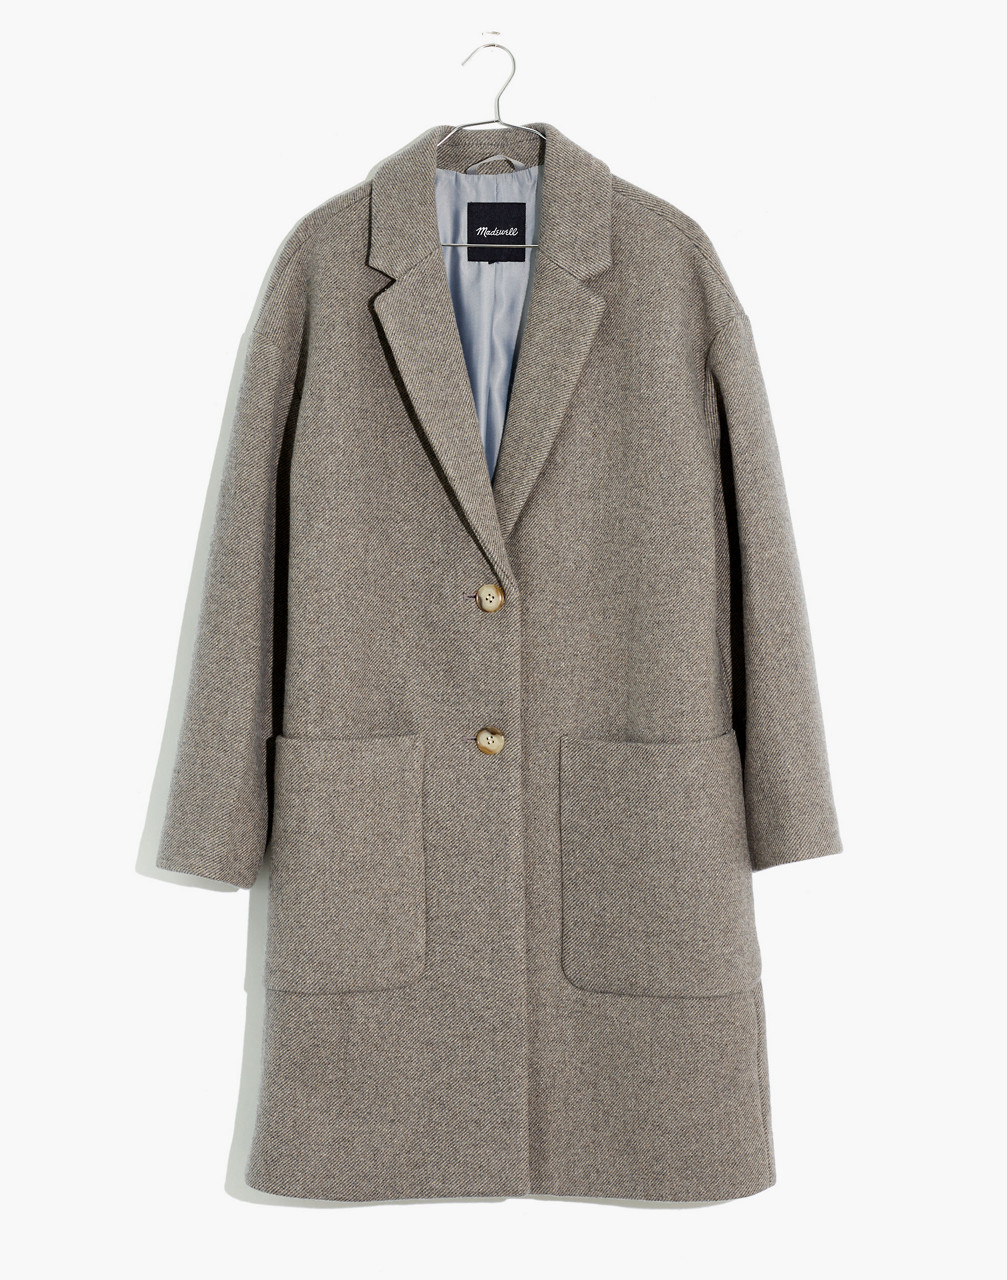 Vintage Coats & Jackets | Retro Coats and Jackets Elmcourt Coat in Insuluxe Fabric $268.00 AT vintagedancer.com